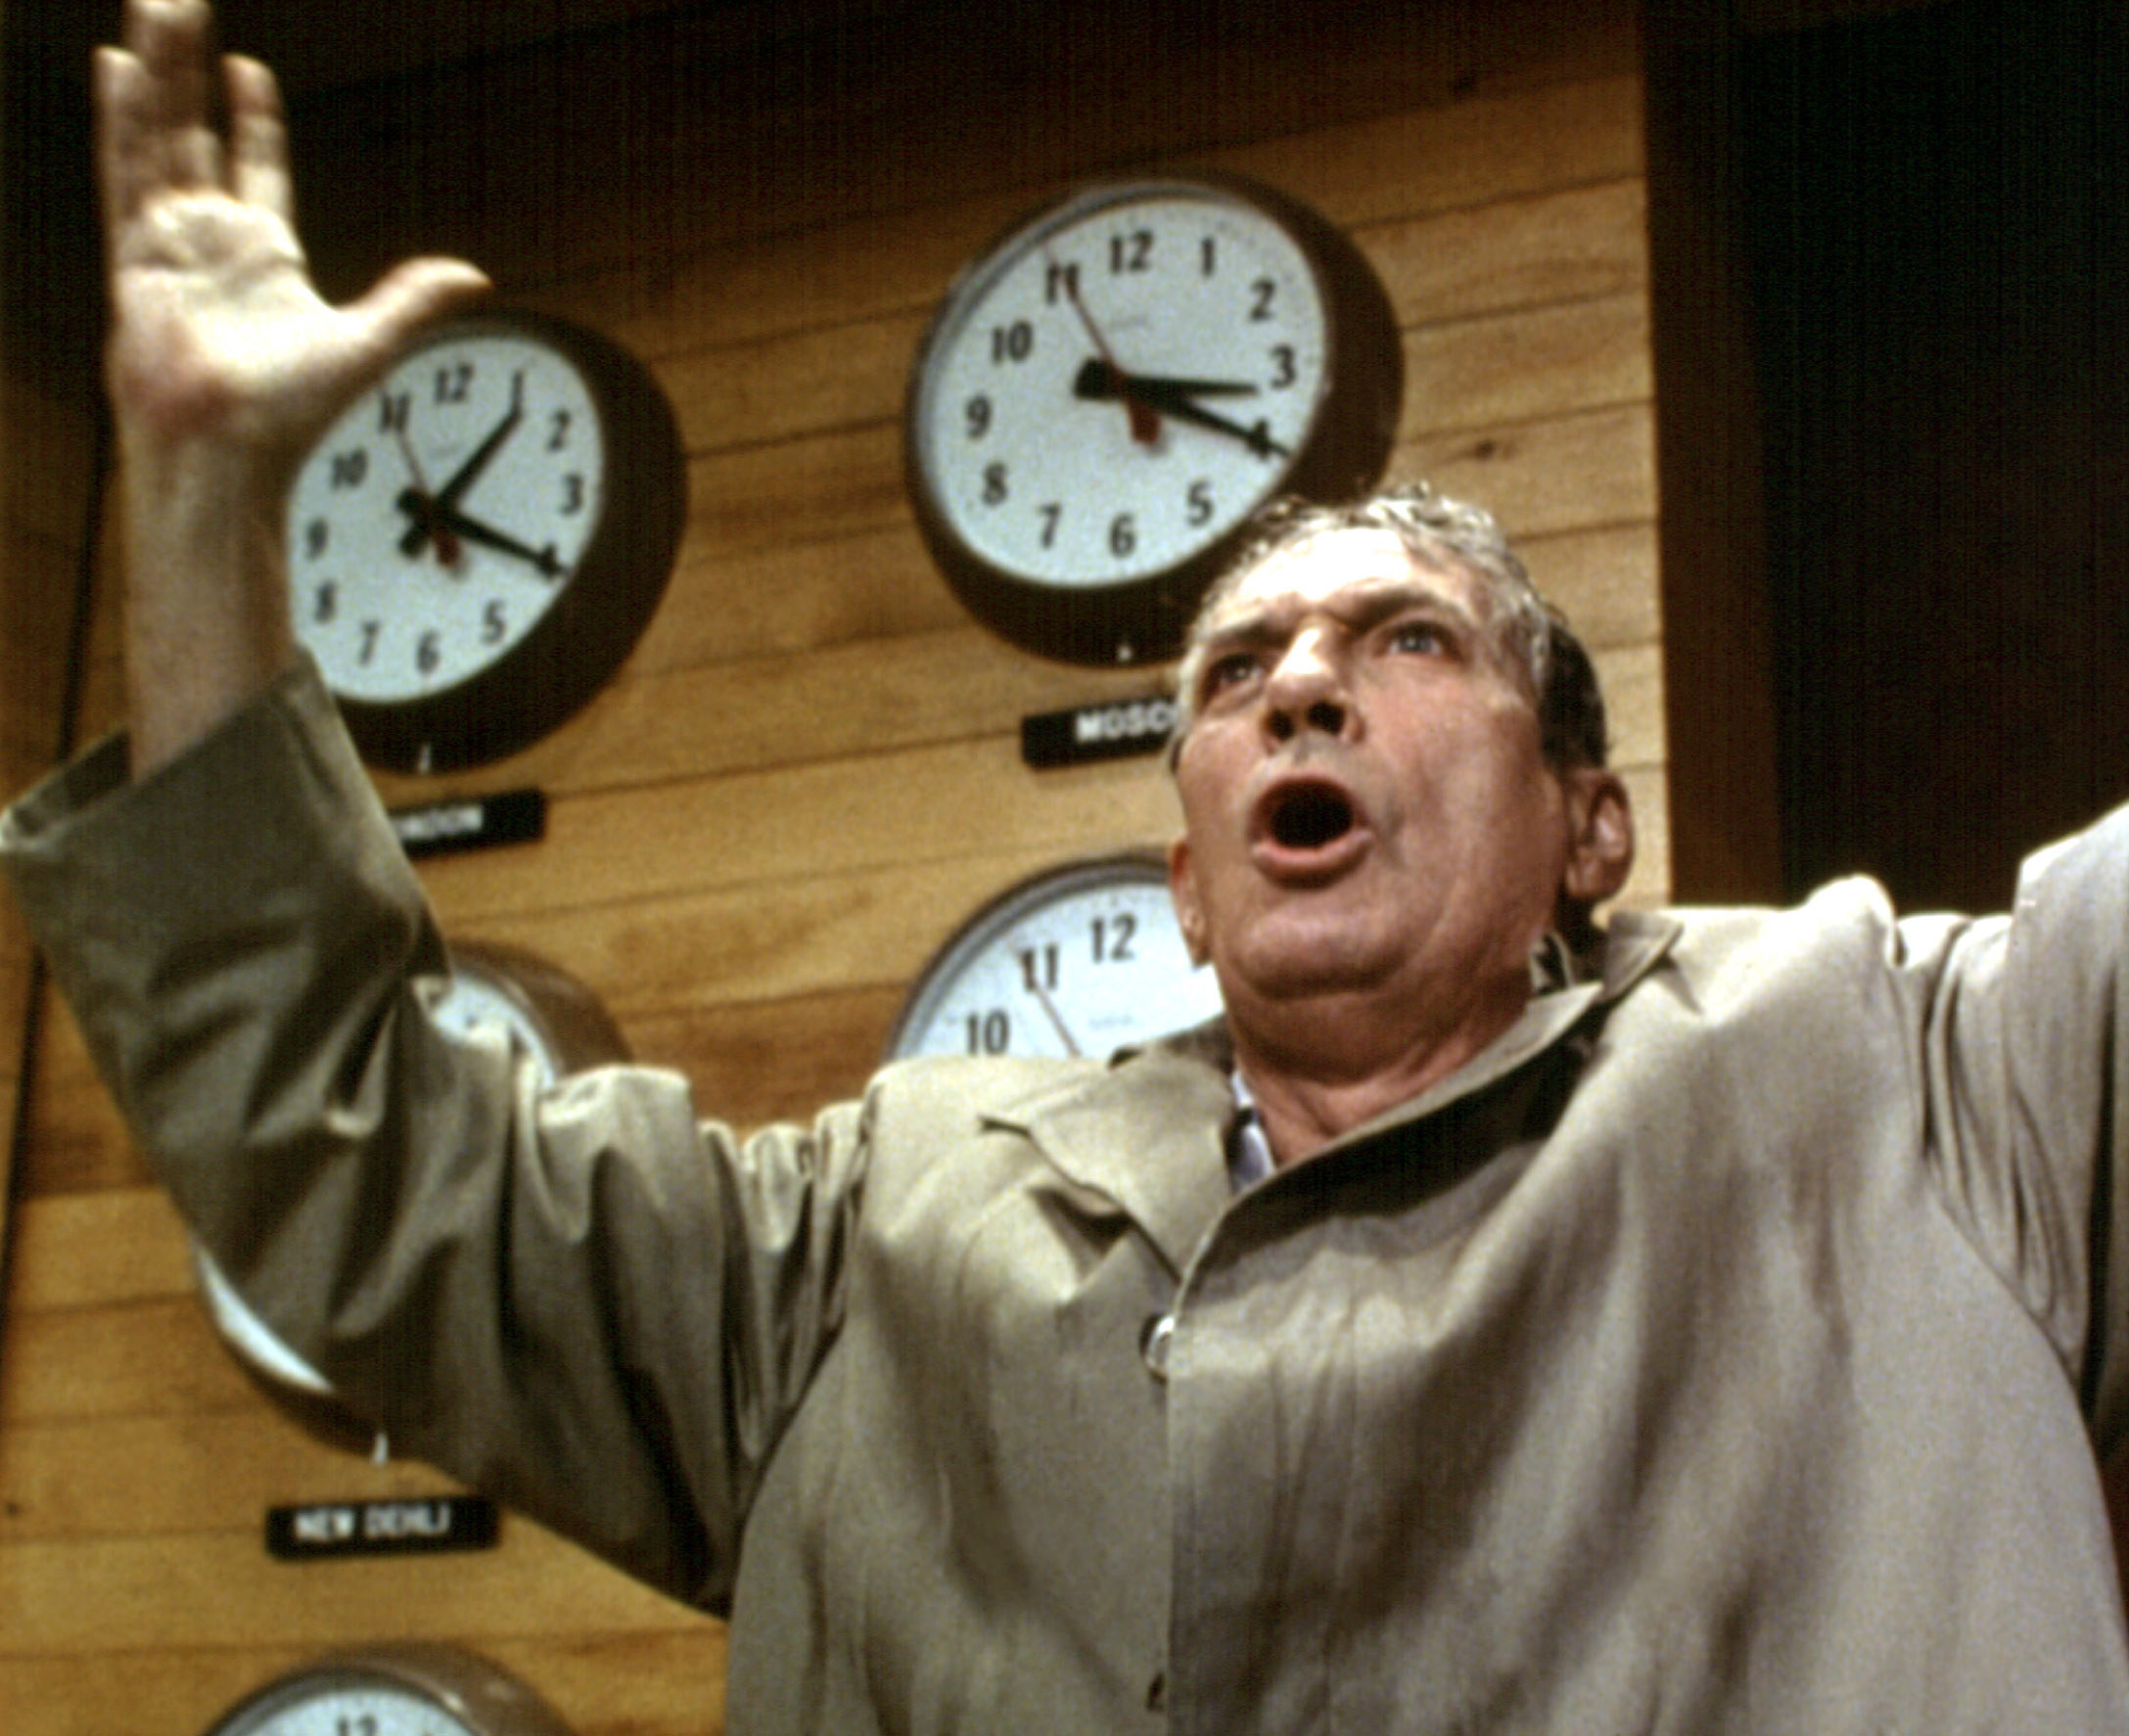 Peter Finch shouts in front of a wall of clocks drenched in a trench coat